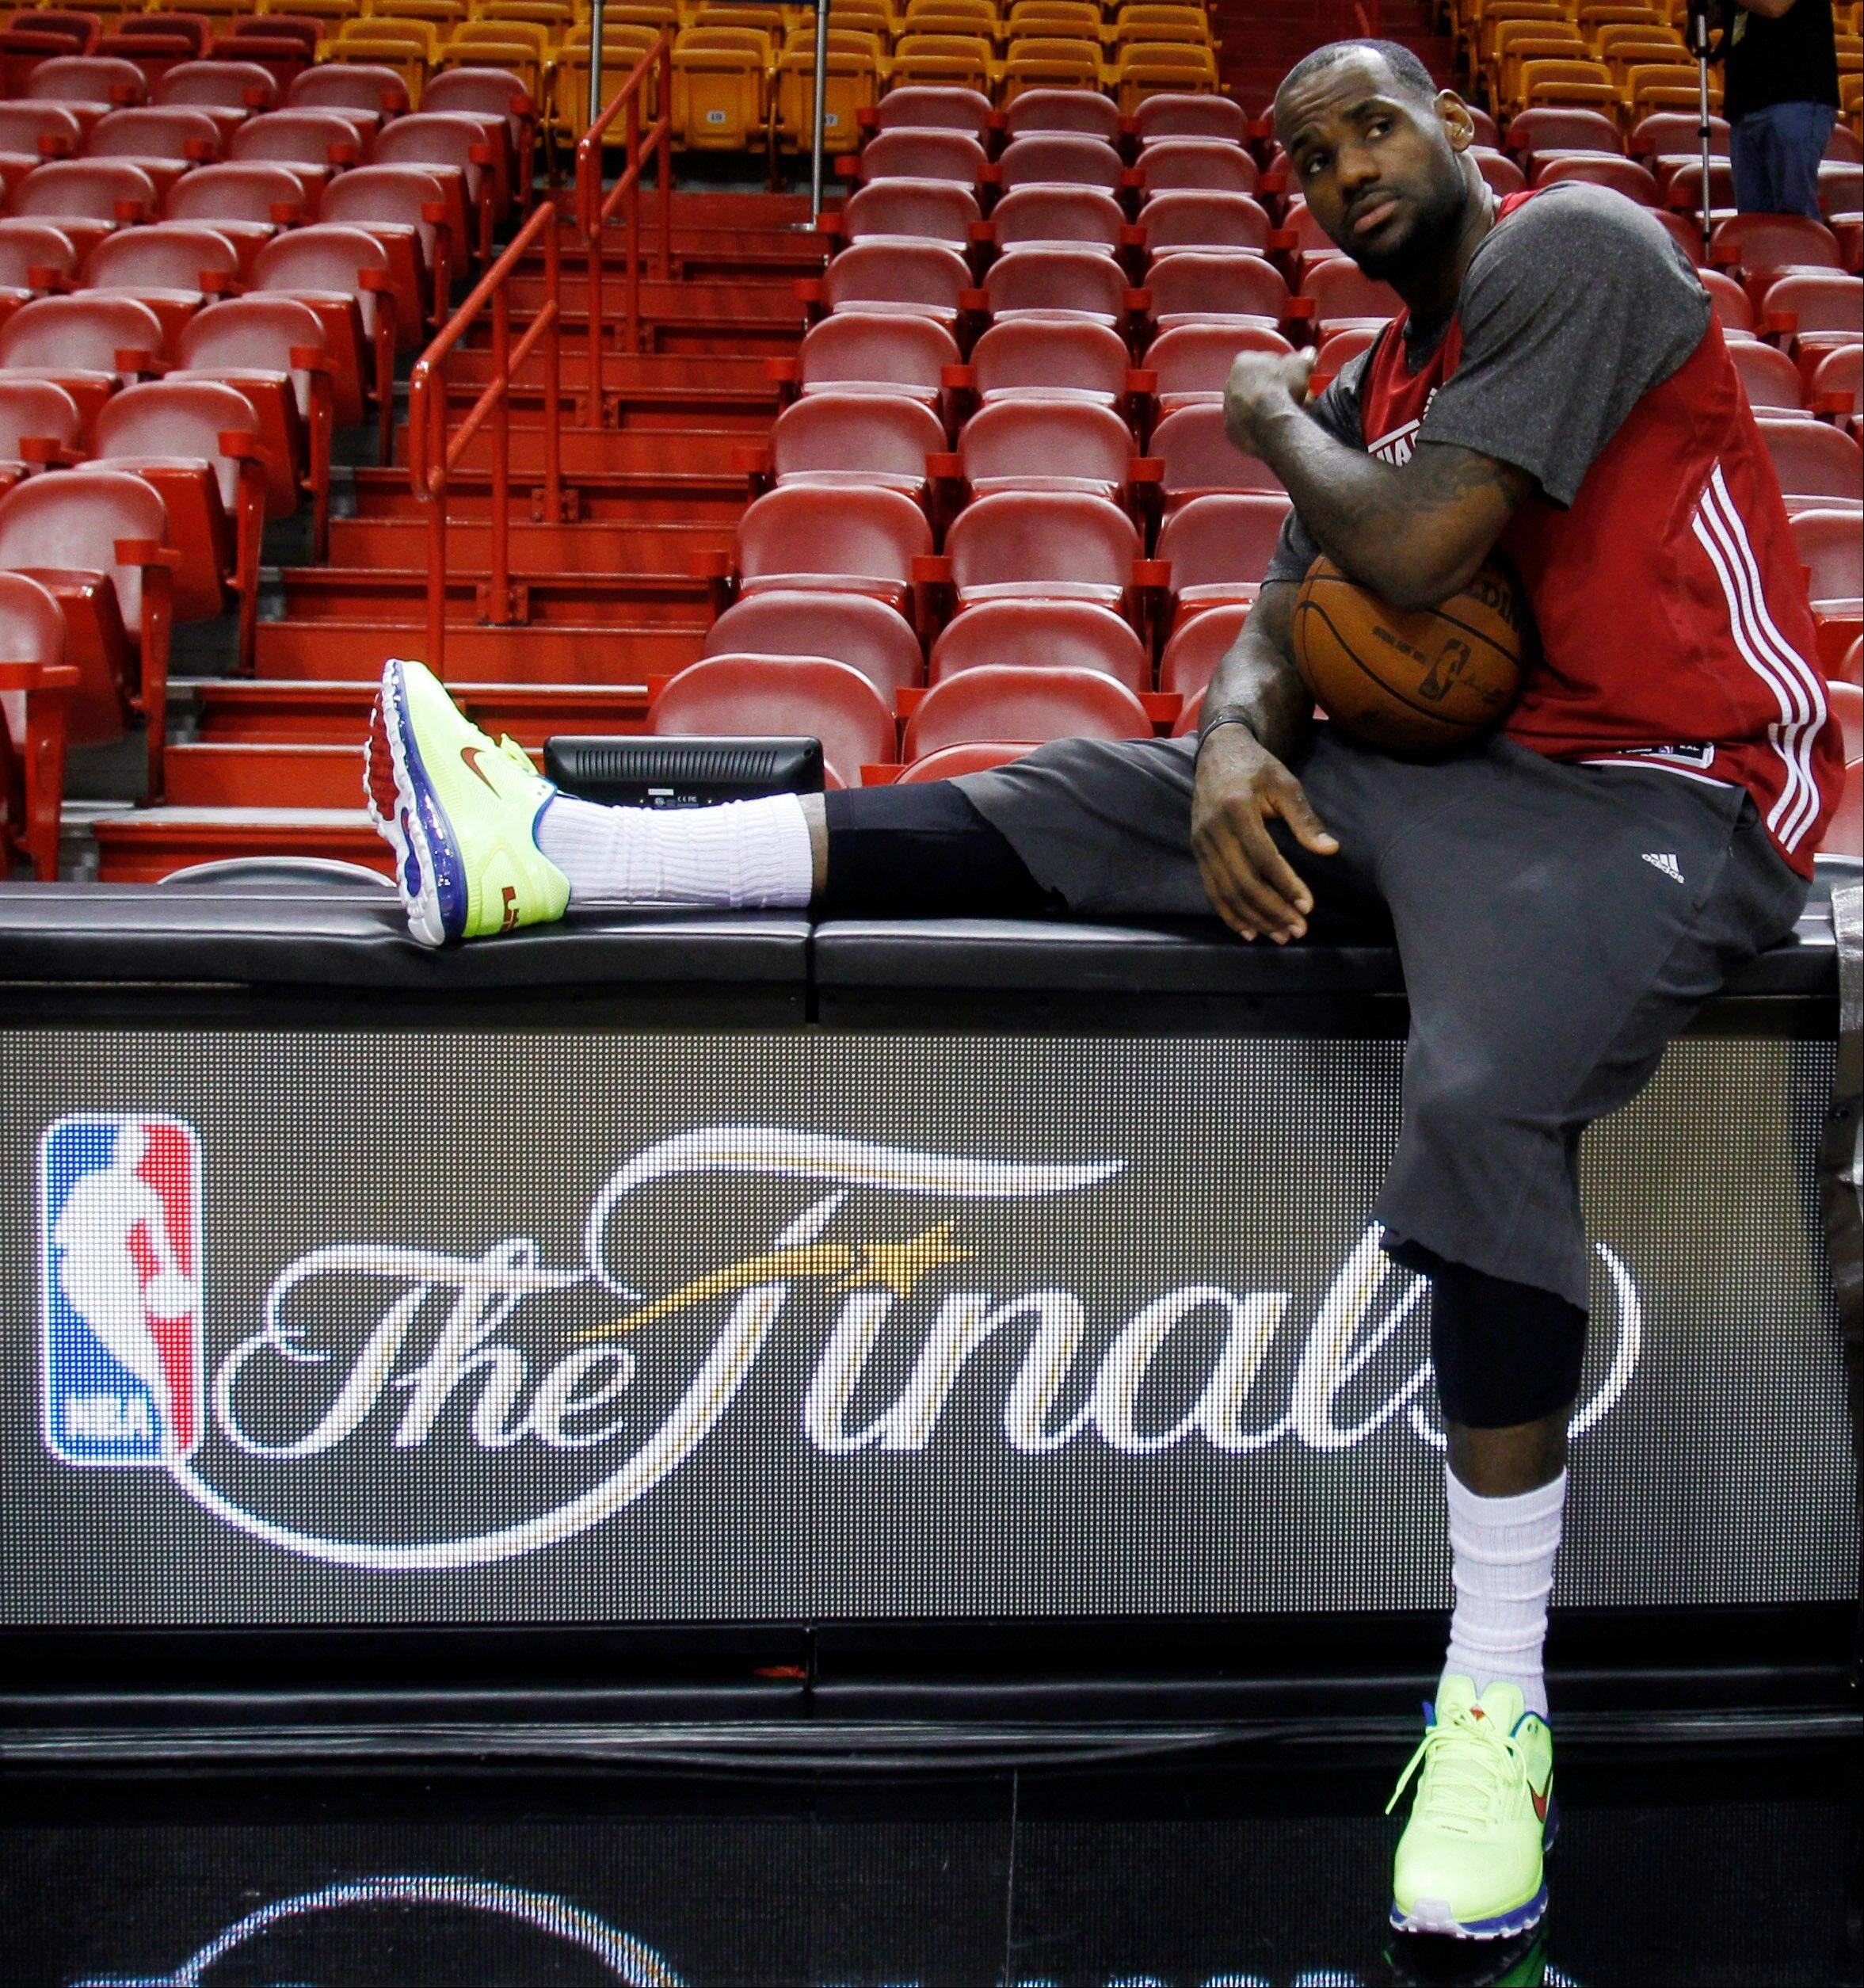 Miami Heat small forward LeBron James takes a break on the scorer's table during practice Monday in Miami. The Heat play the Oklahoma City Thunder in Game 4 of the NBA basketball finals on Tuesday.